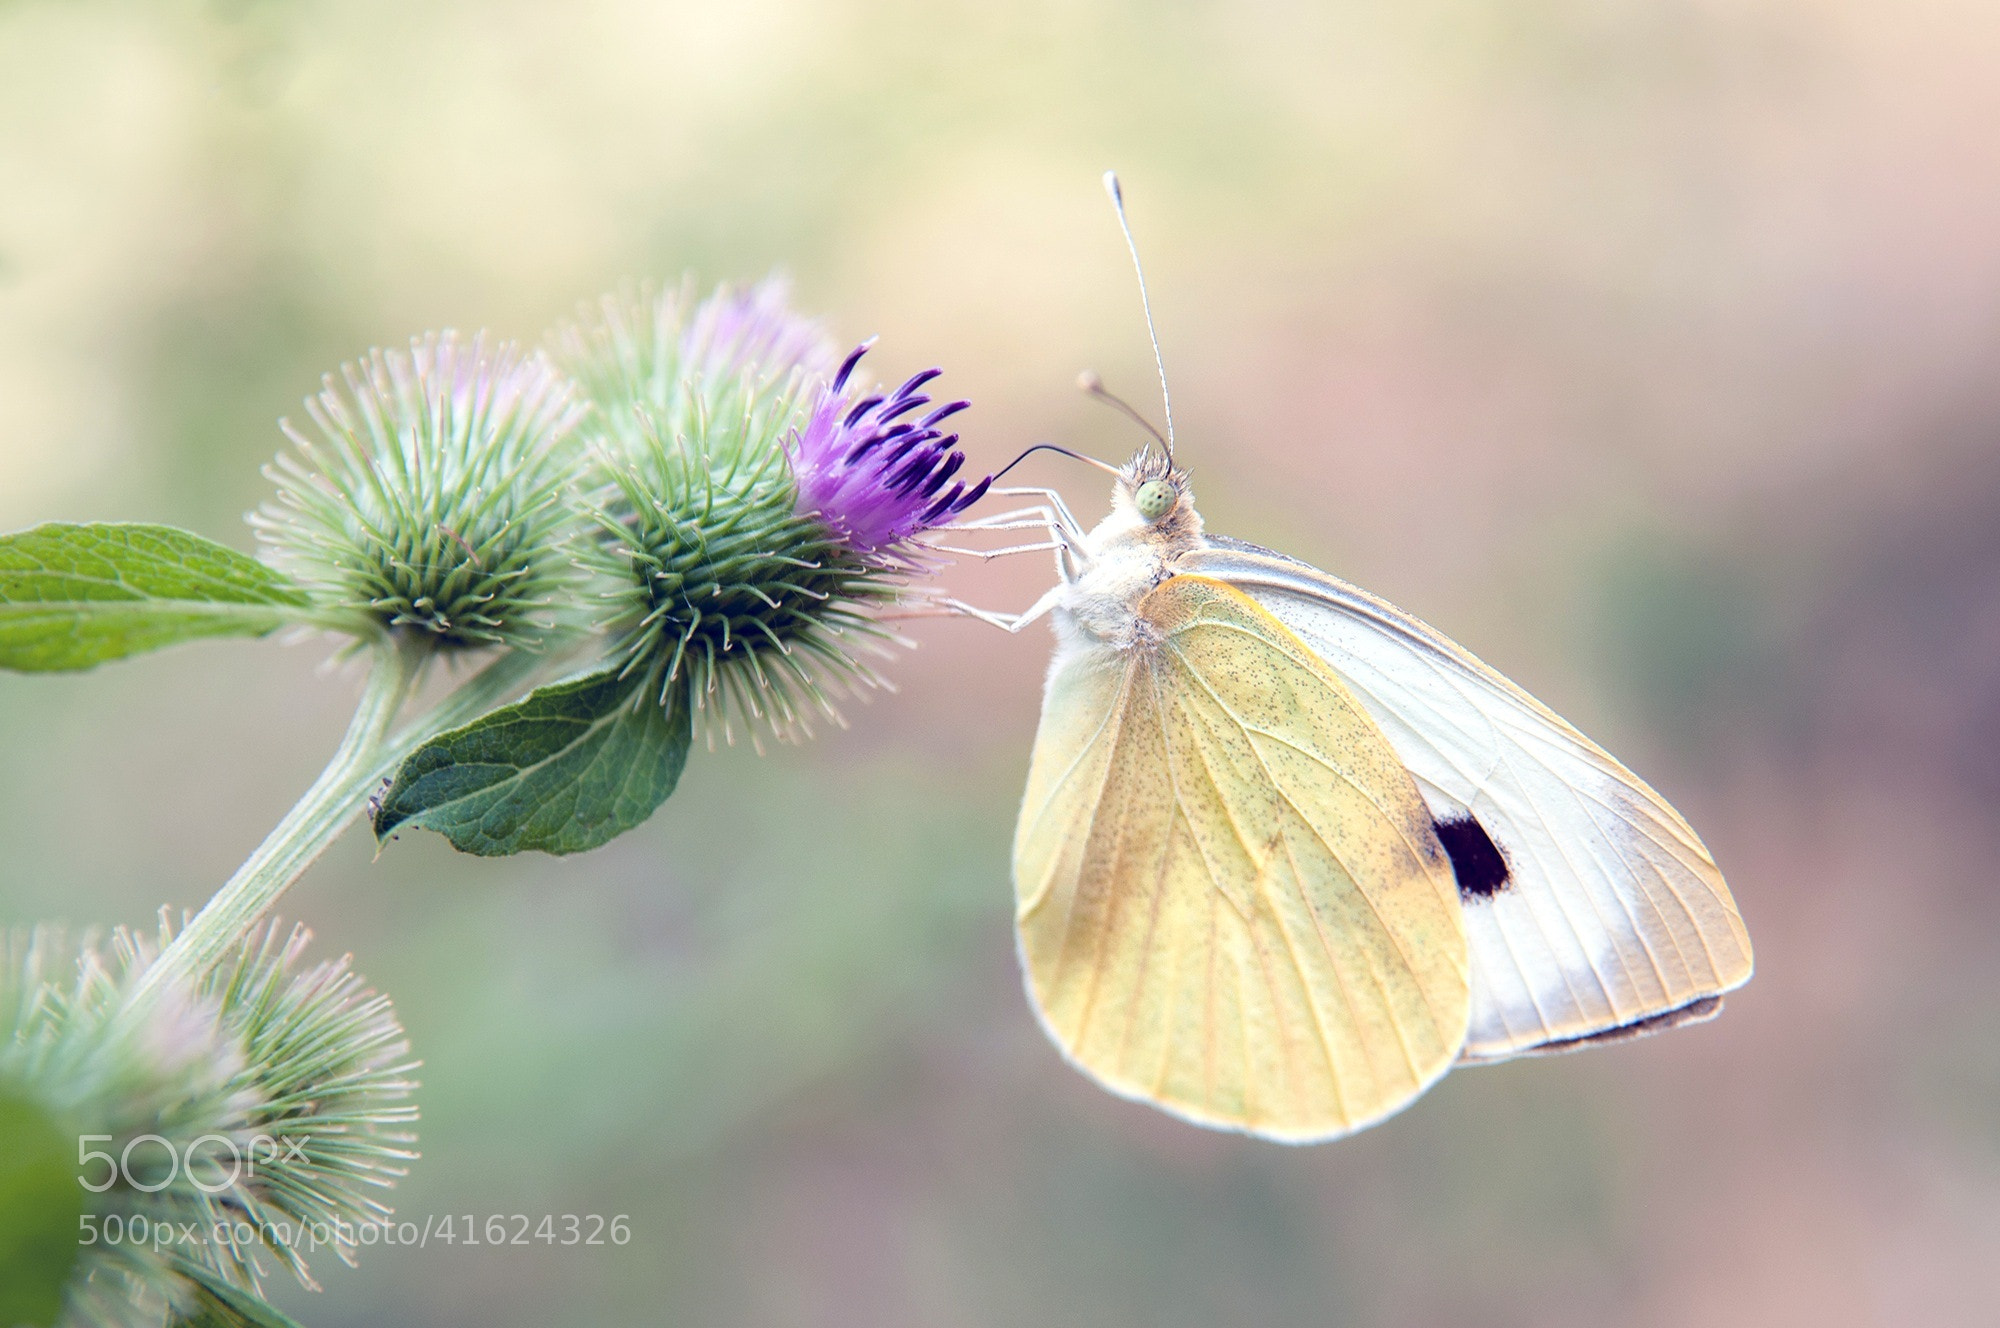 Photograph Butterflies in Freedom XVIII. by Juan Dorado on 500px